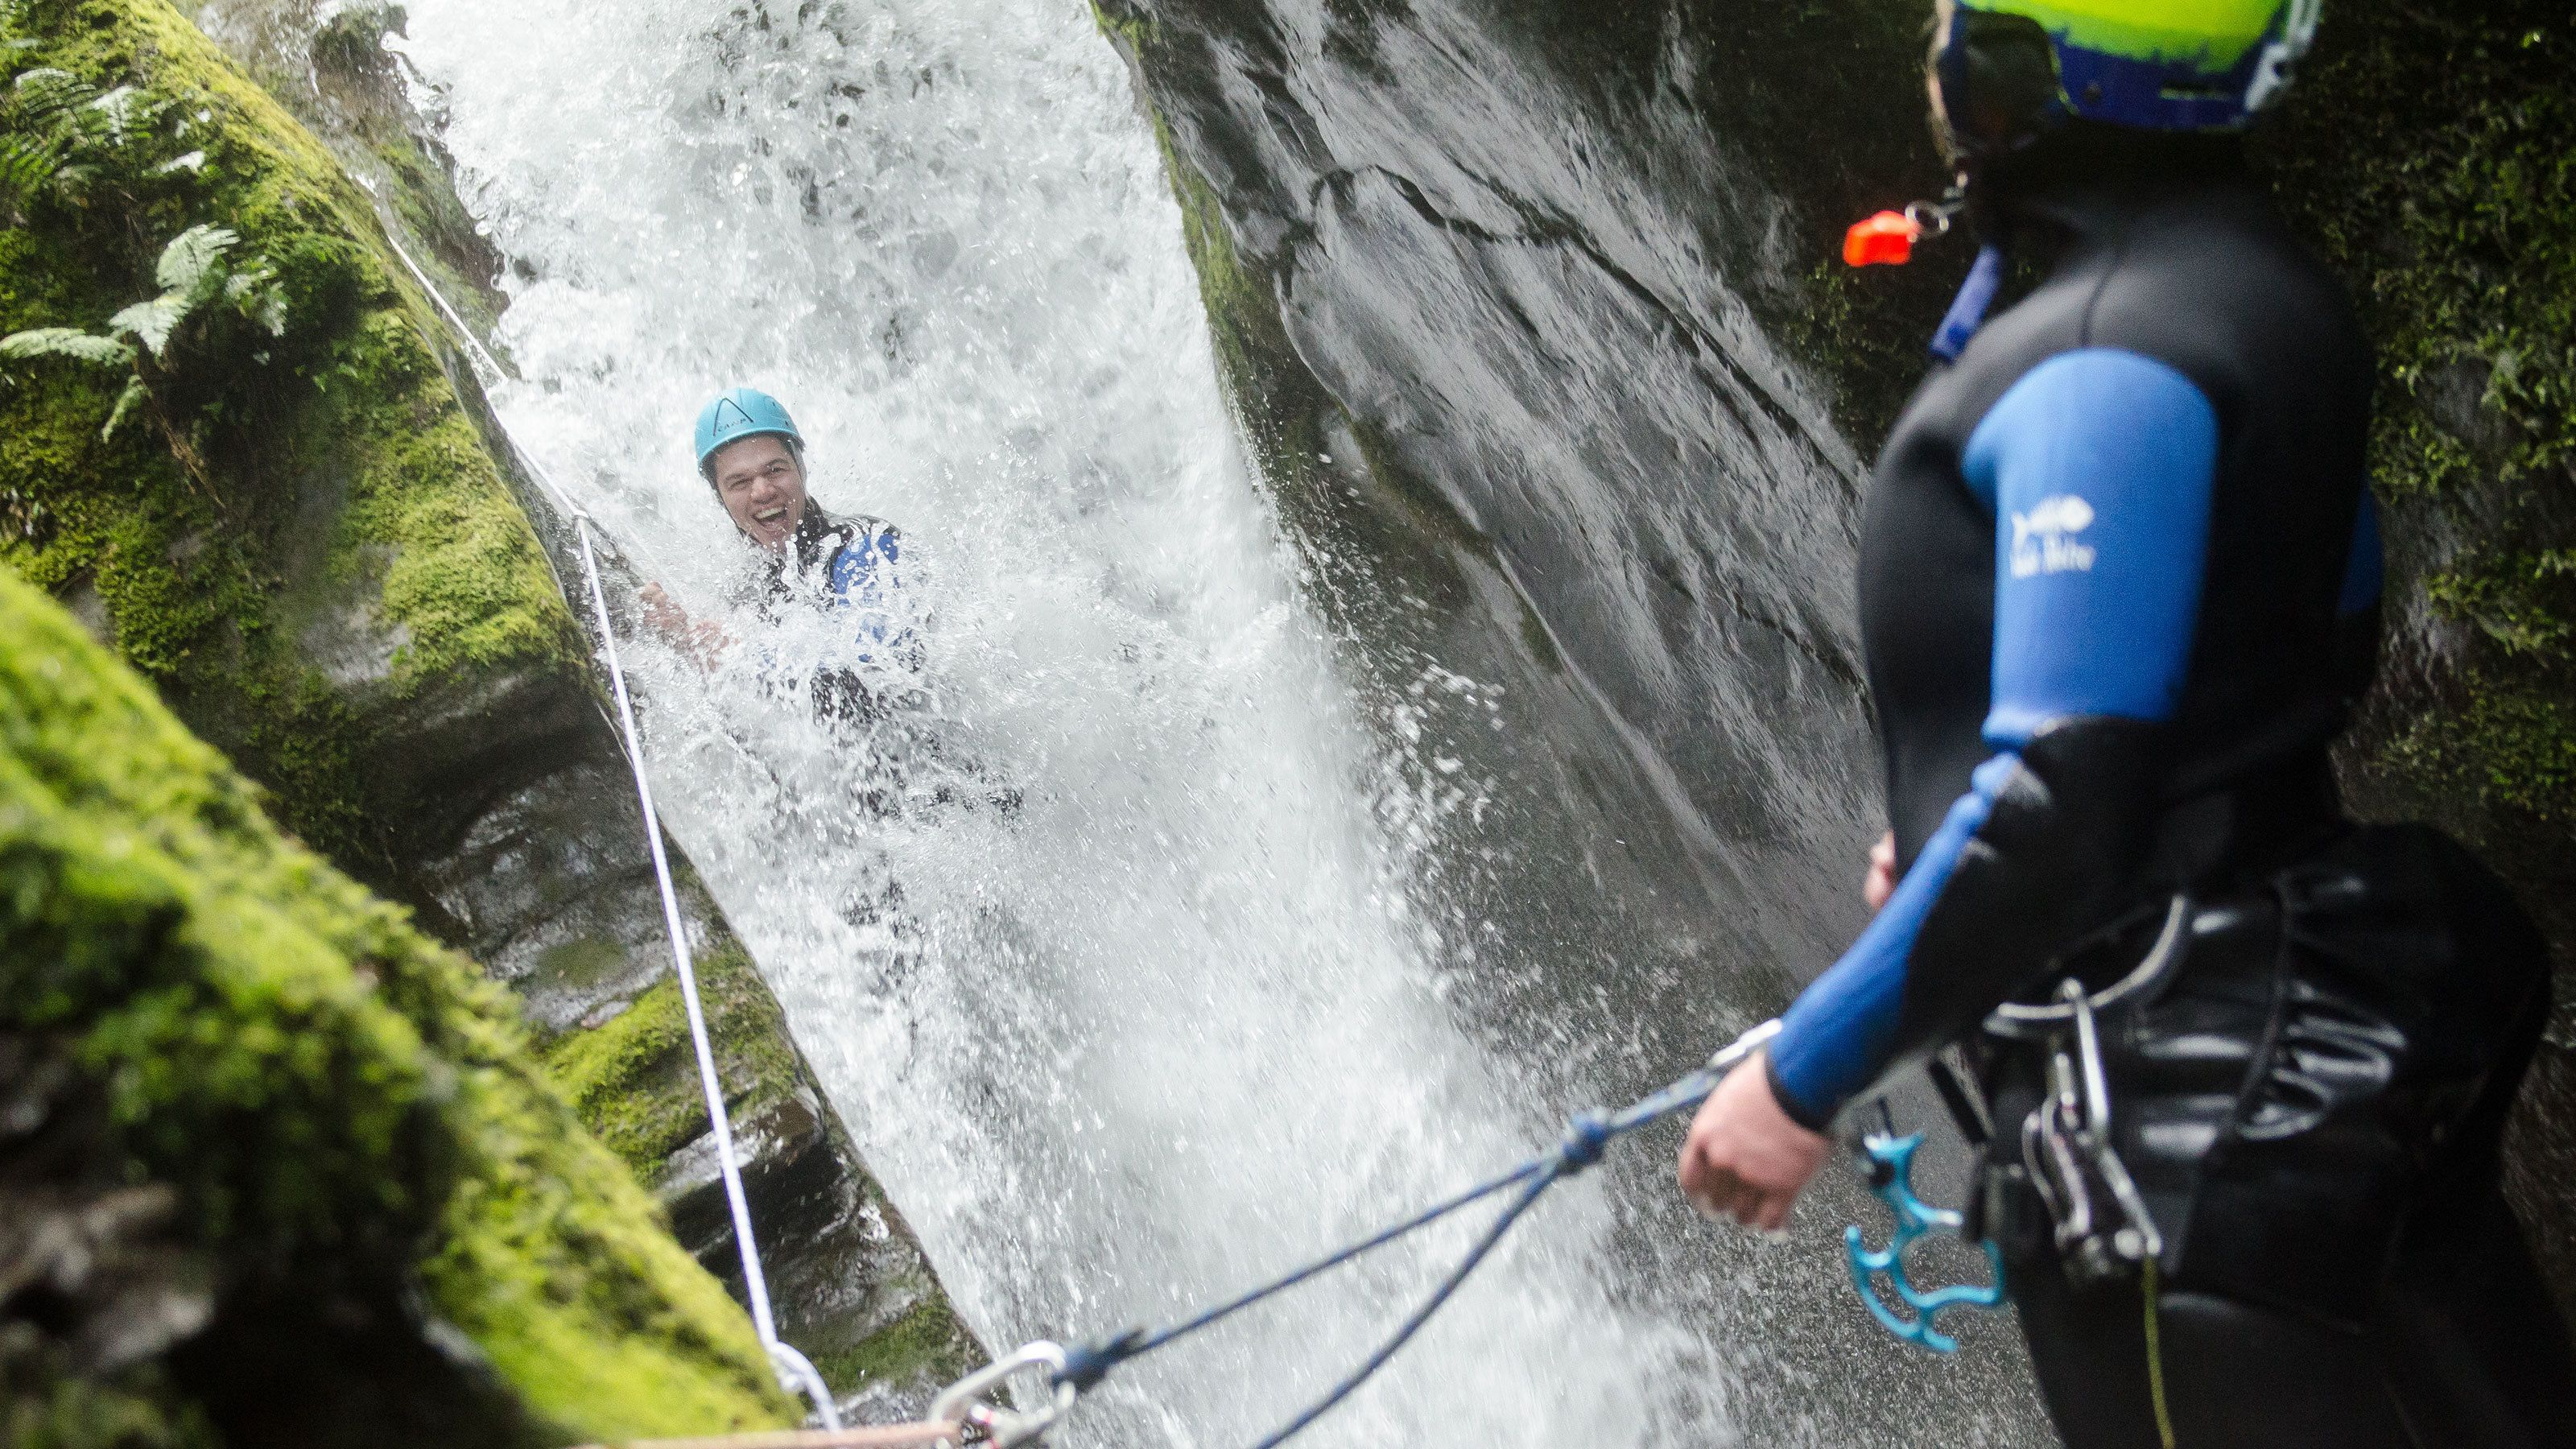 Person sliding down waterfall on New Zealand adventure